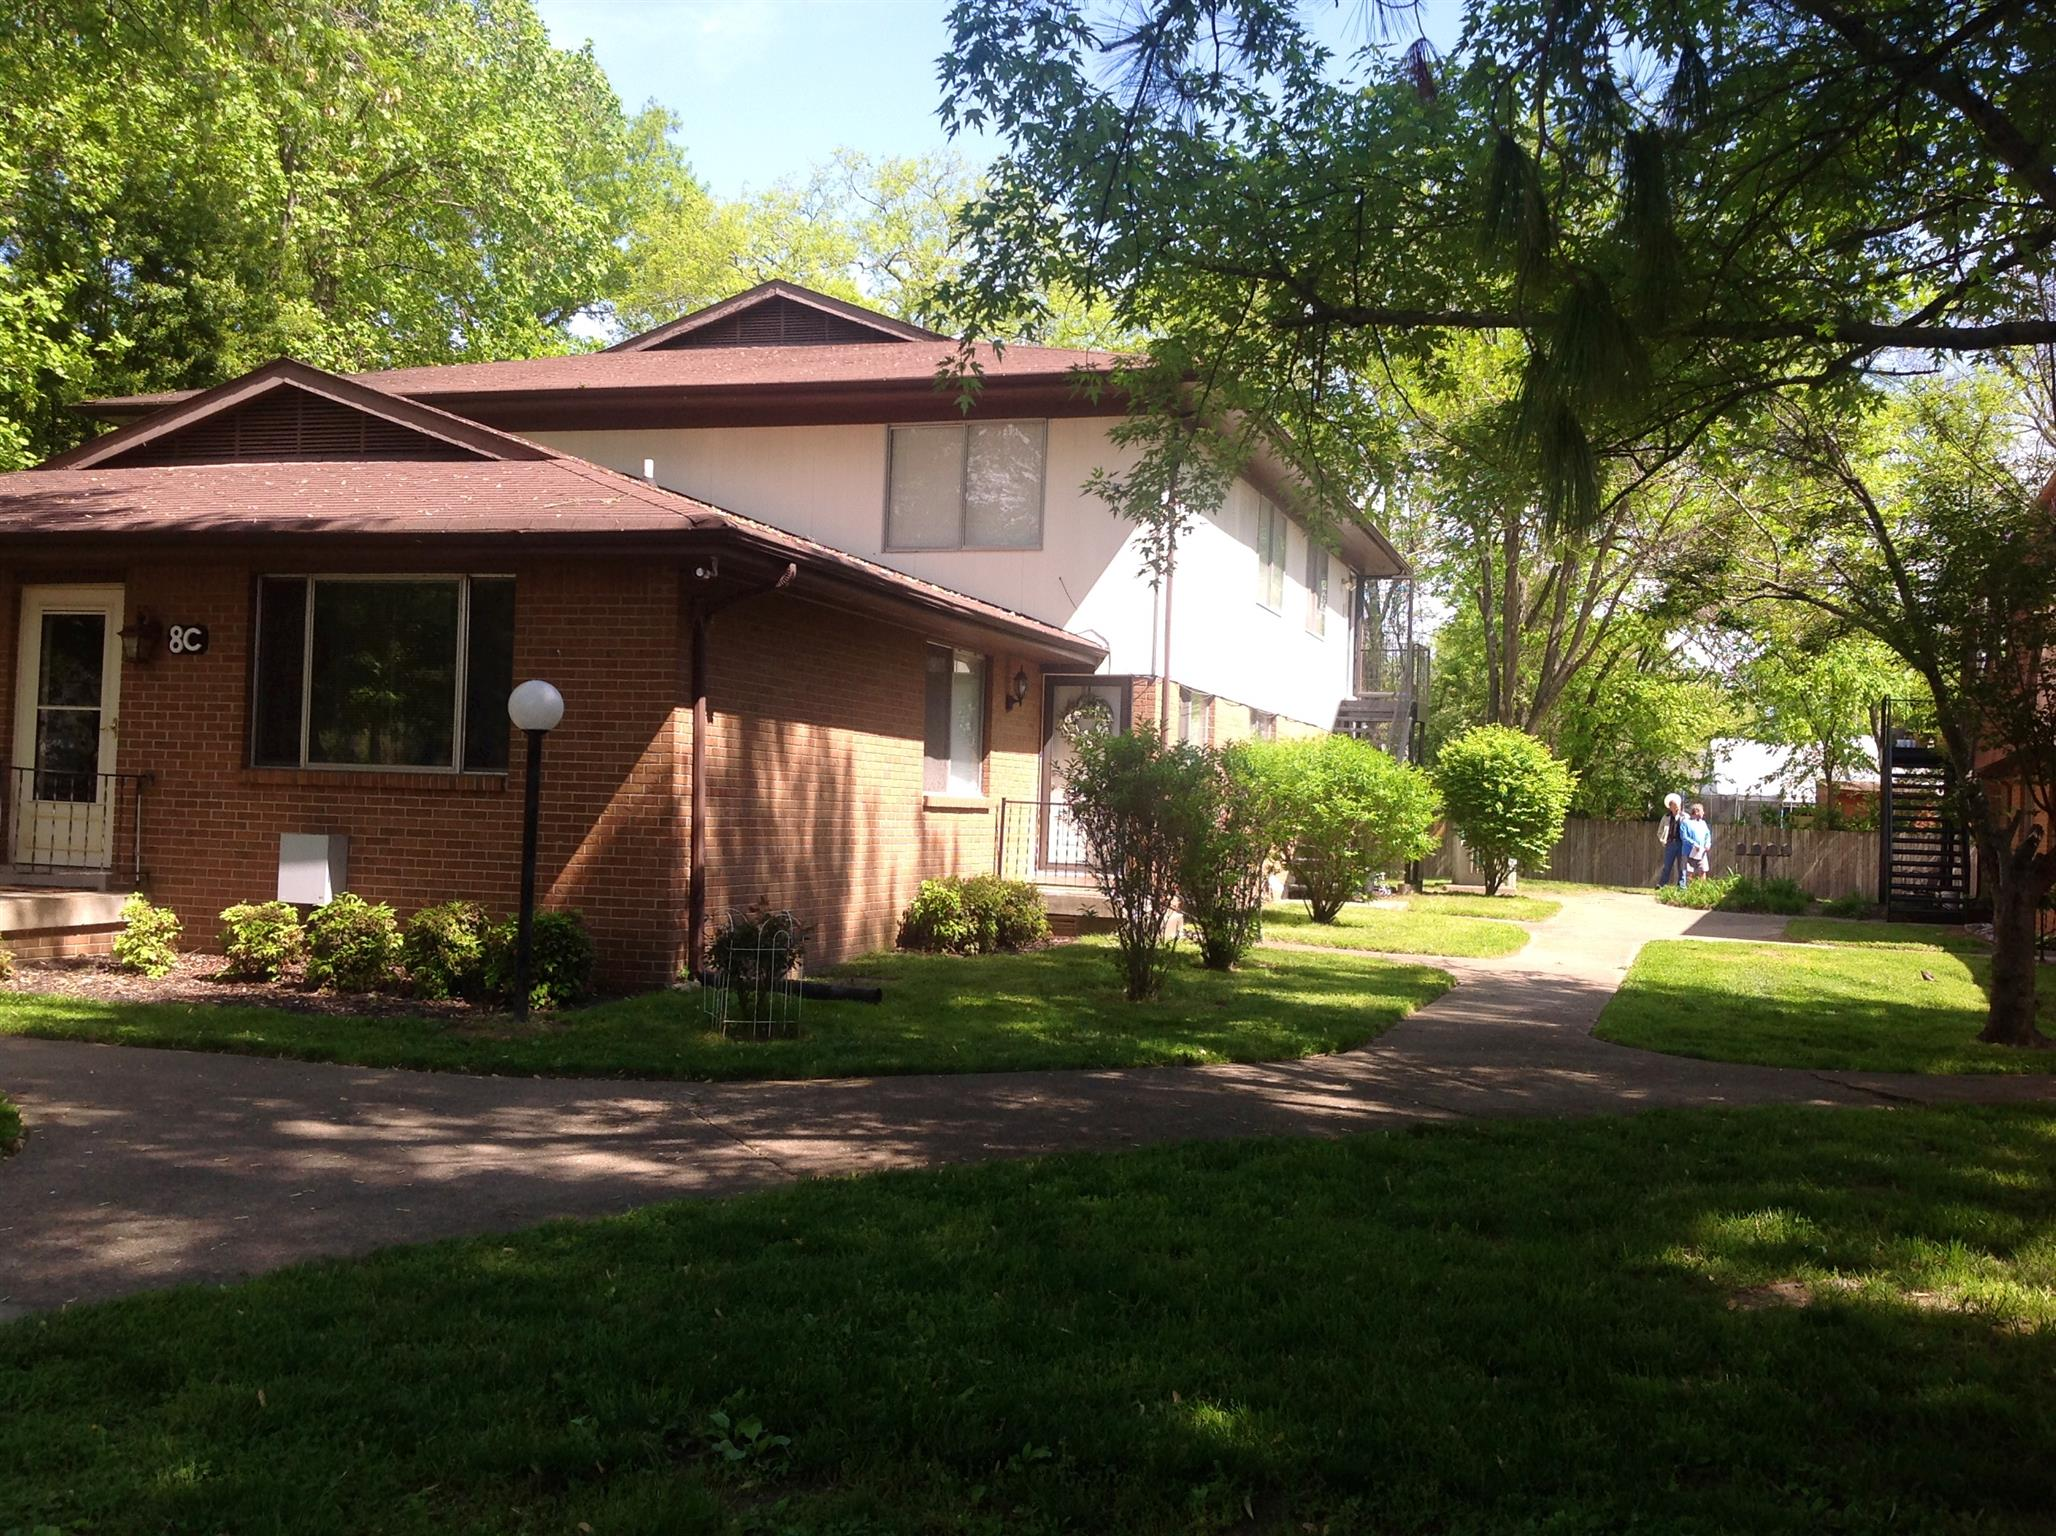 250 Donna Dr Apt 8D, Hendersonville in Sumner County County, TN 37075 Home for Sale